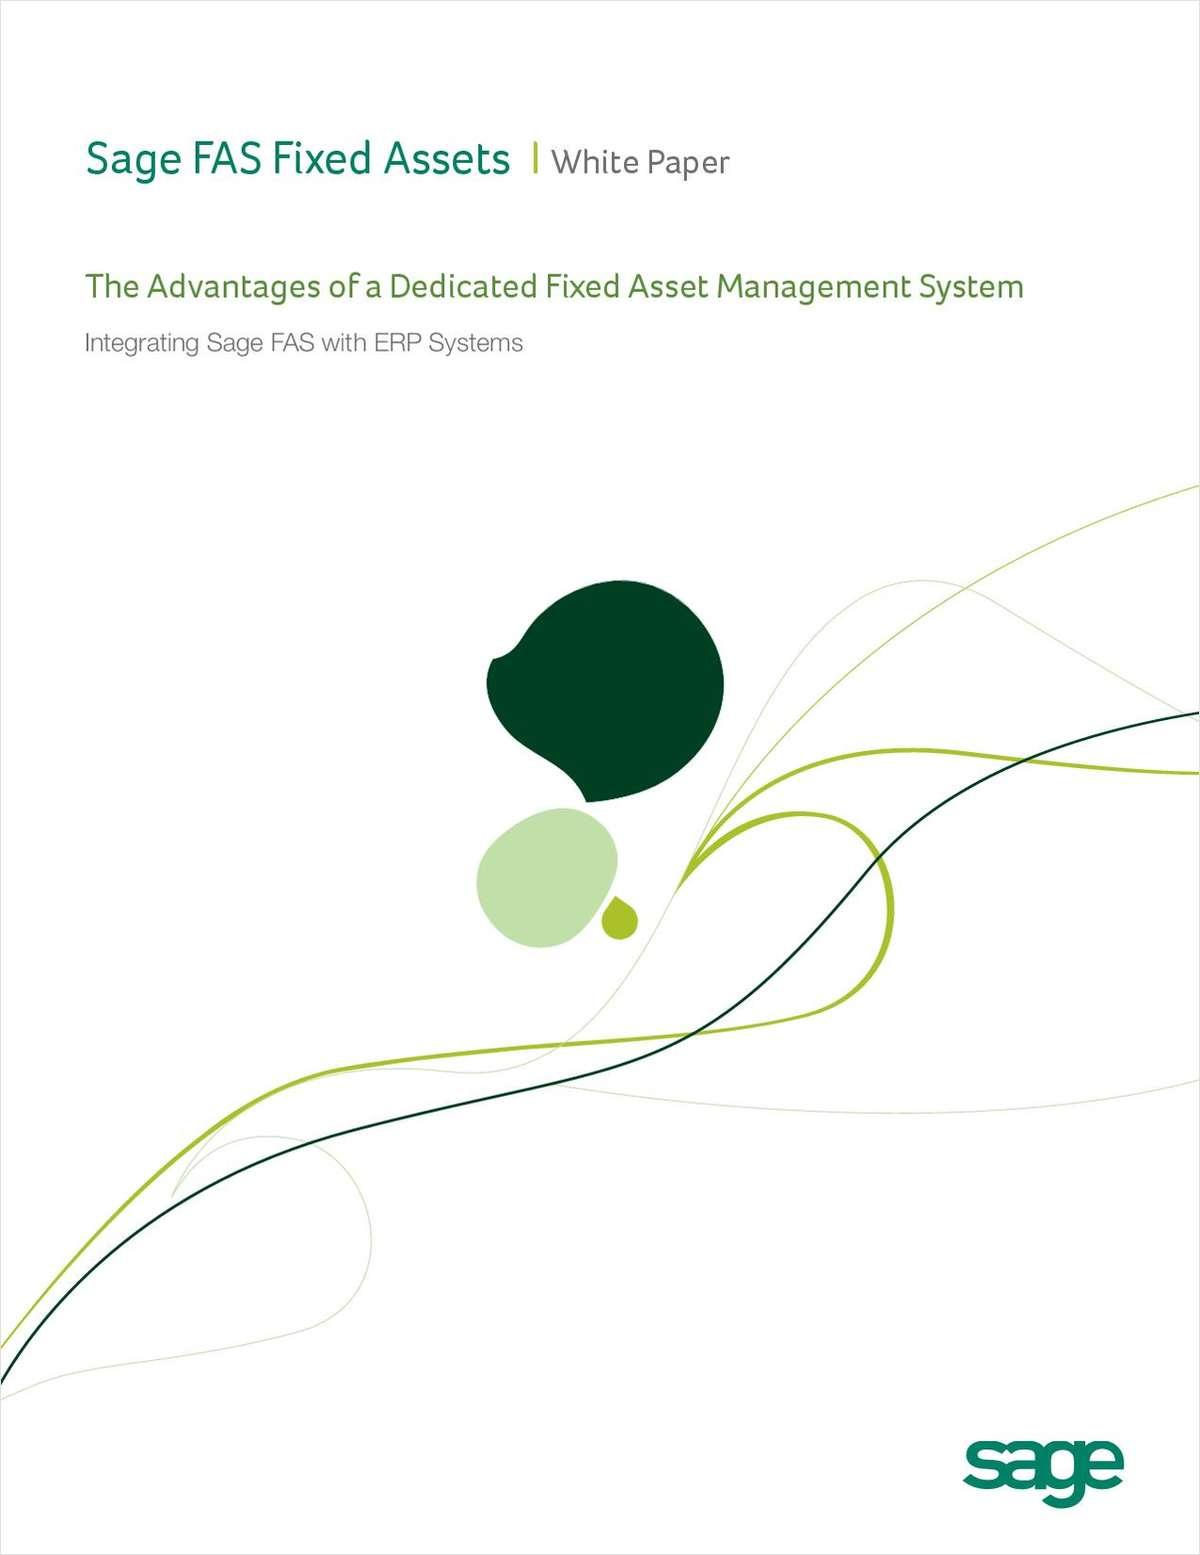 The Advantages of a Dedicated Fixed Asset Management System: Integrating Sage FAS with ERP Systems